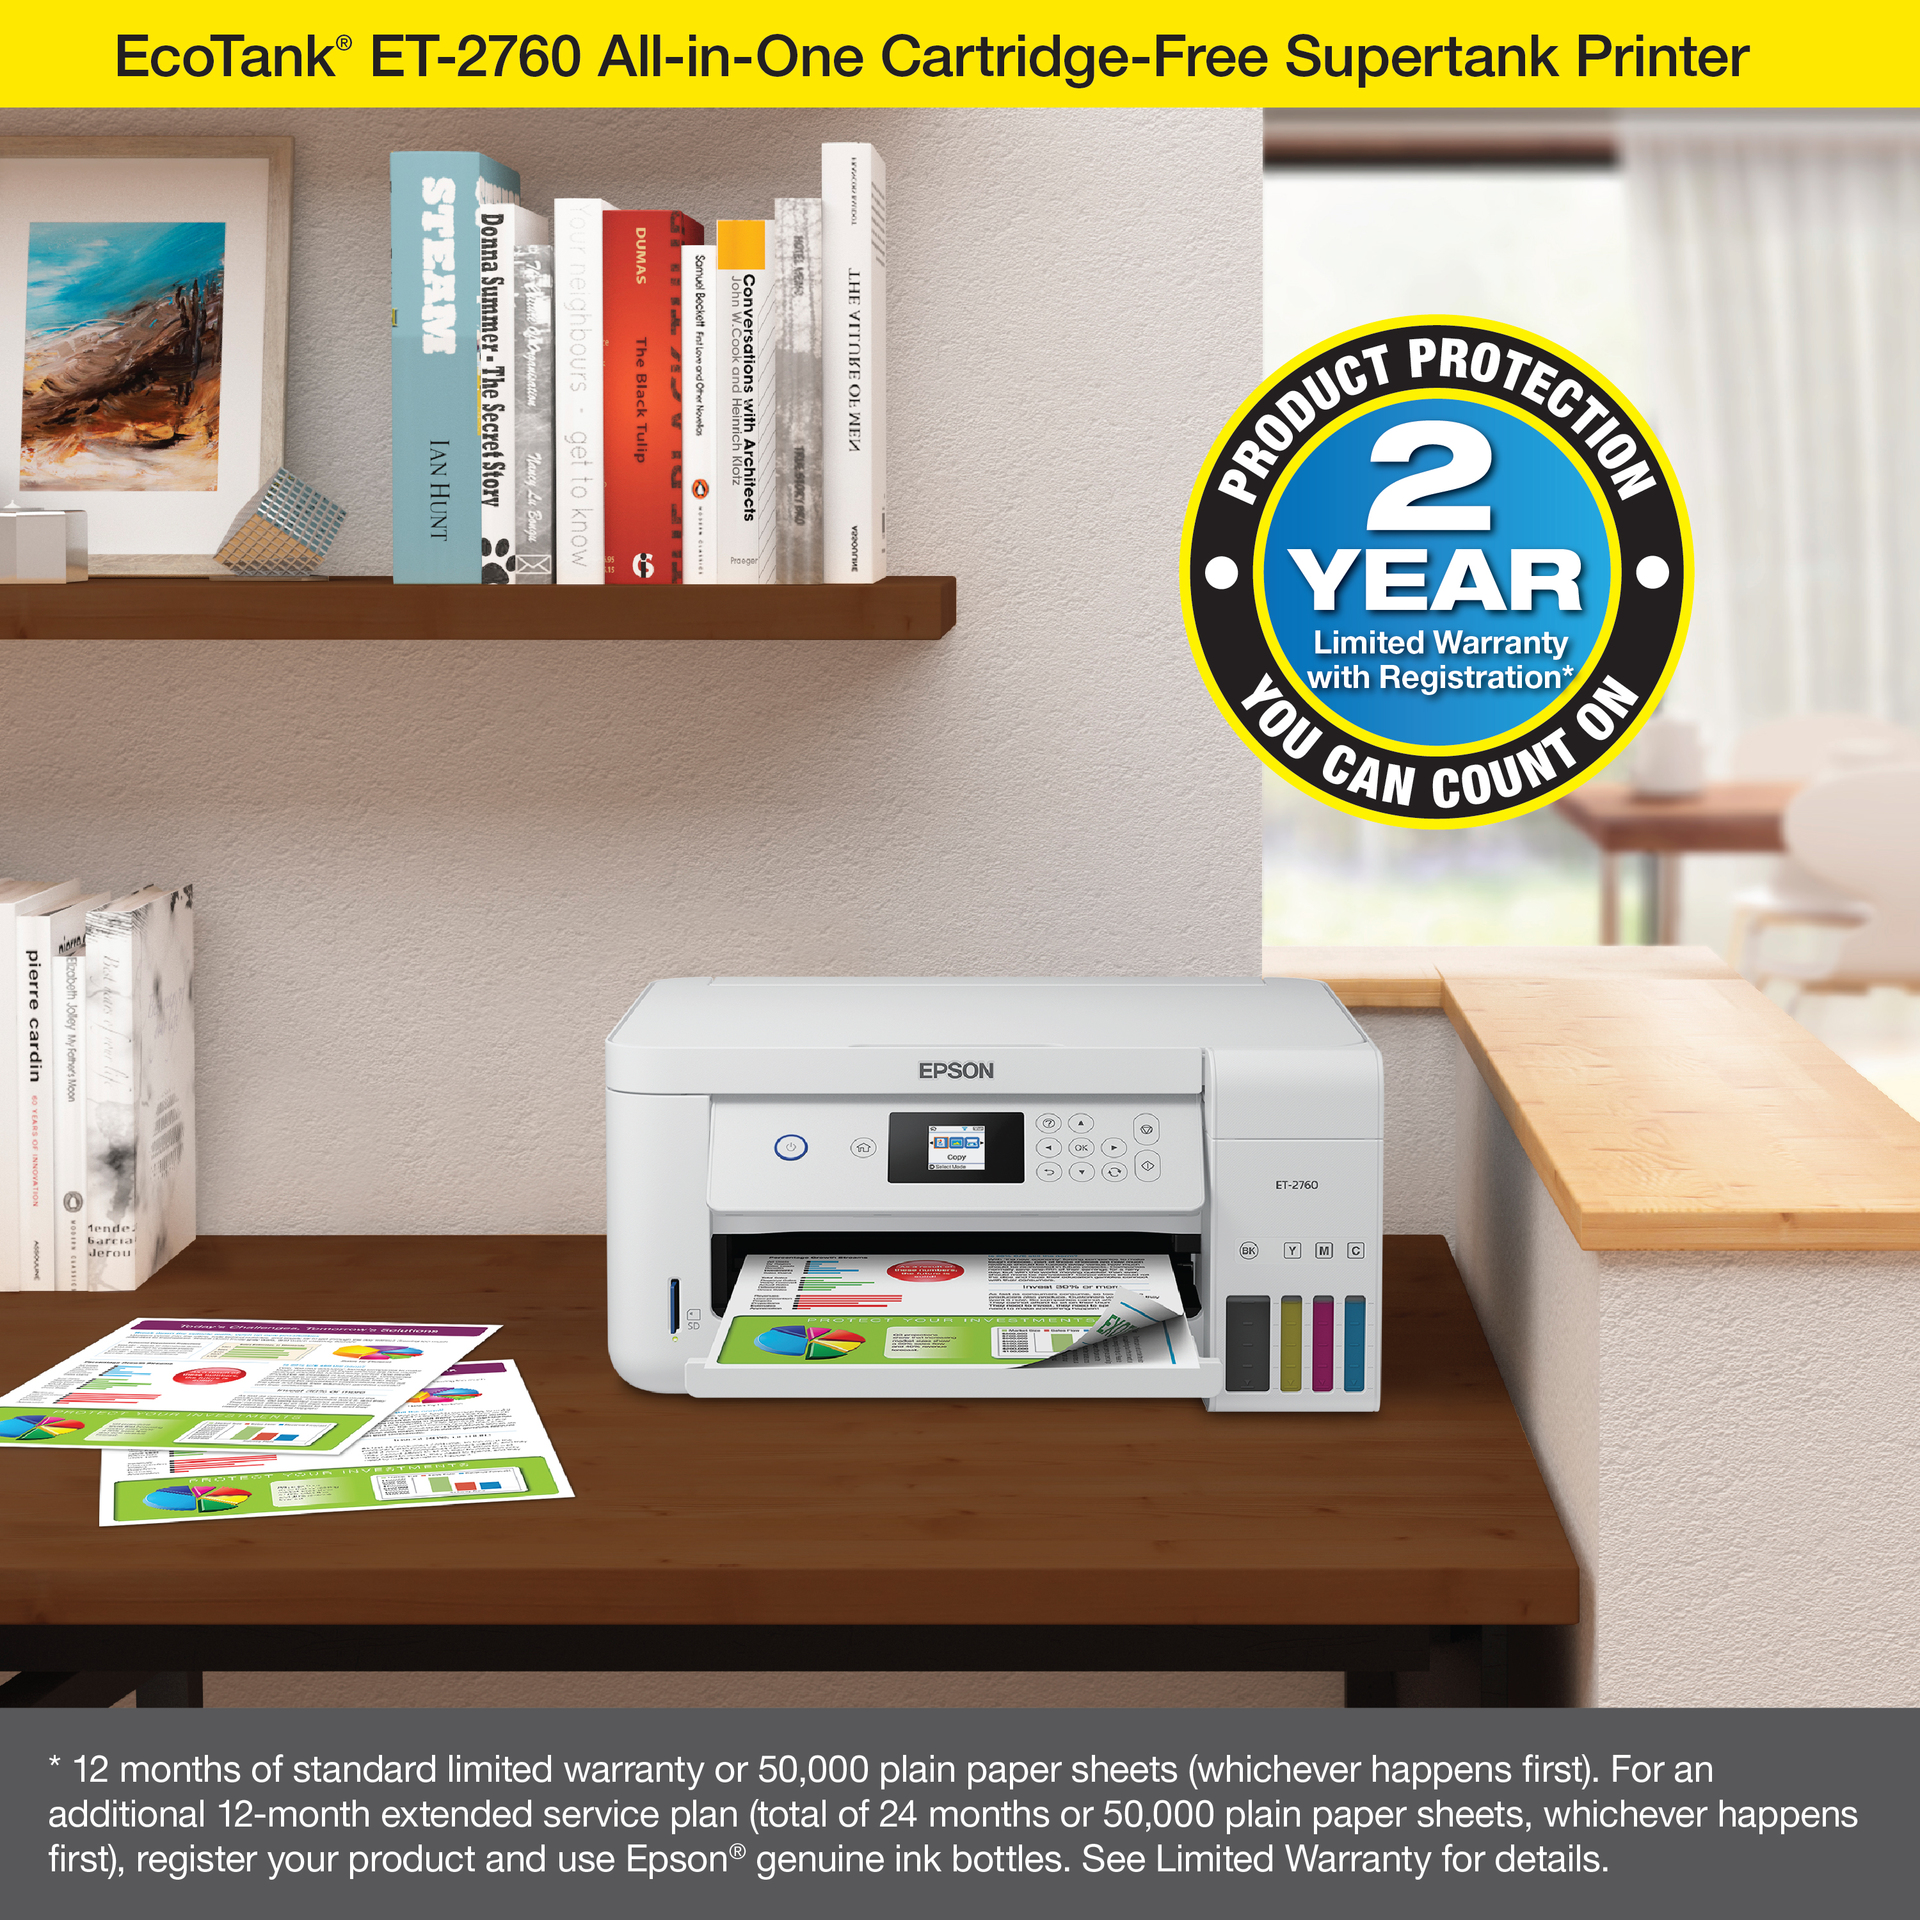 Epson EcoTank ET-2760 All-in-One Supertank Printer